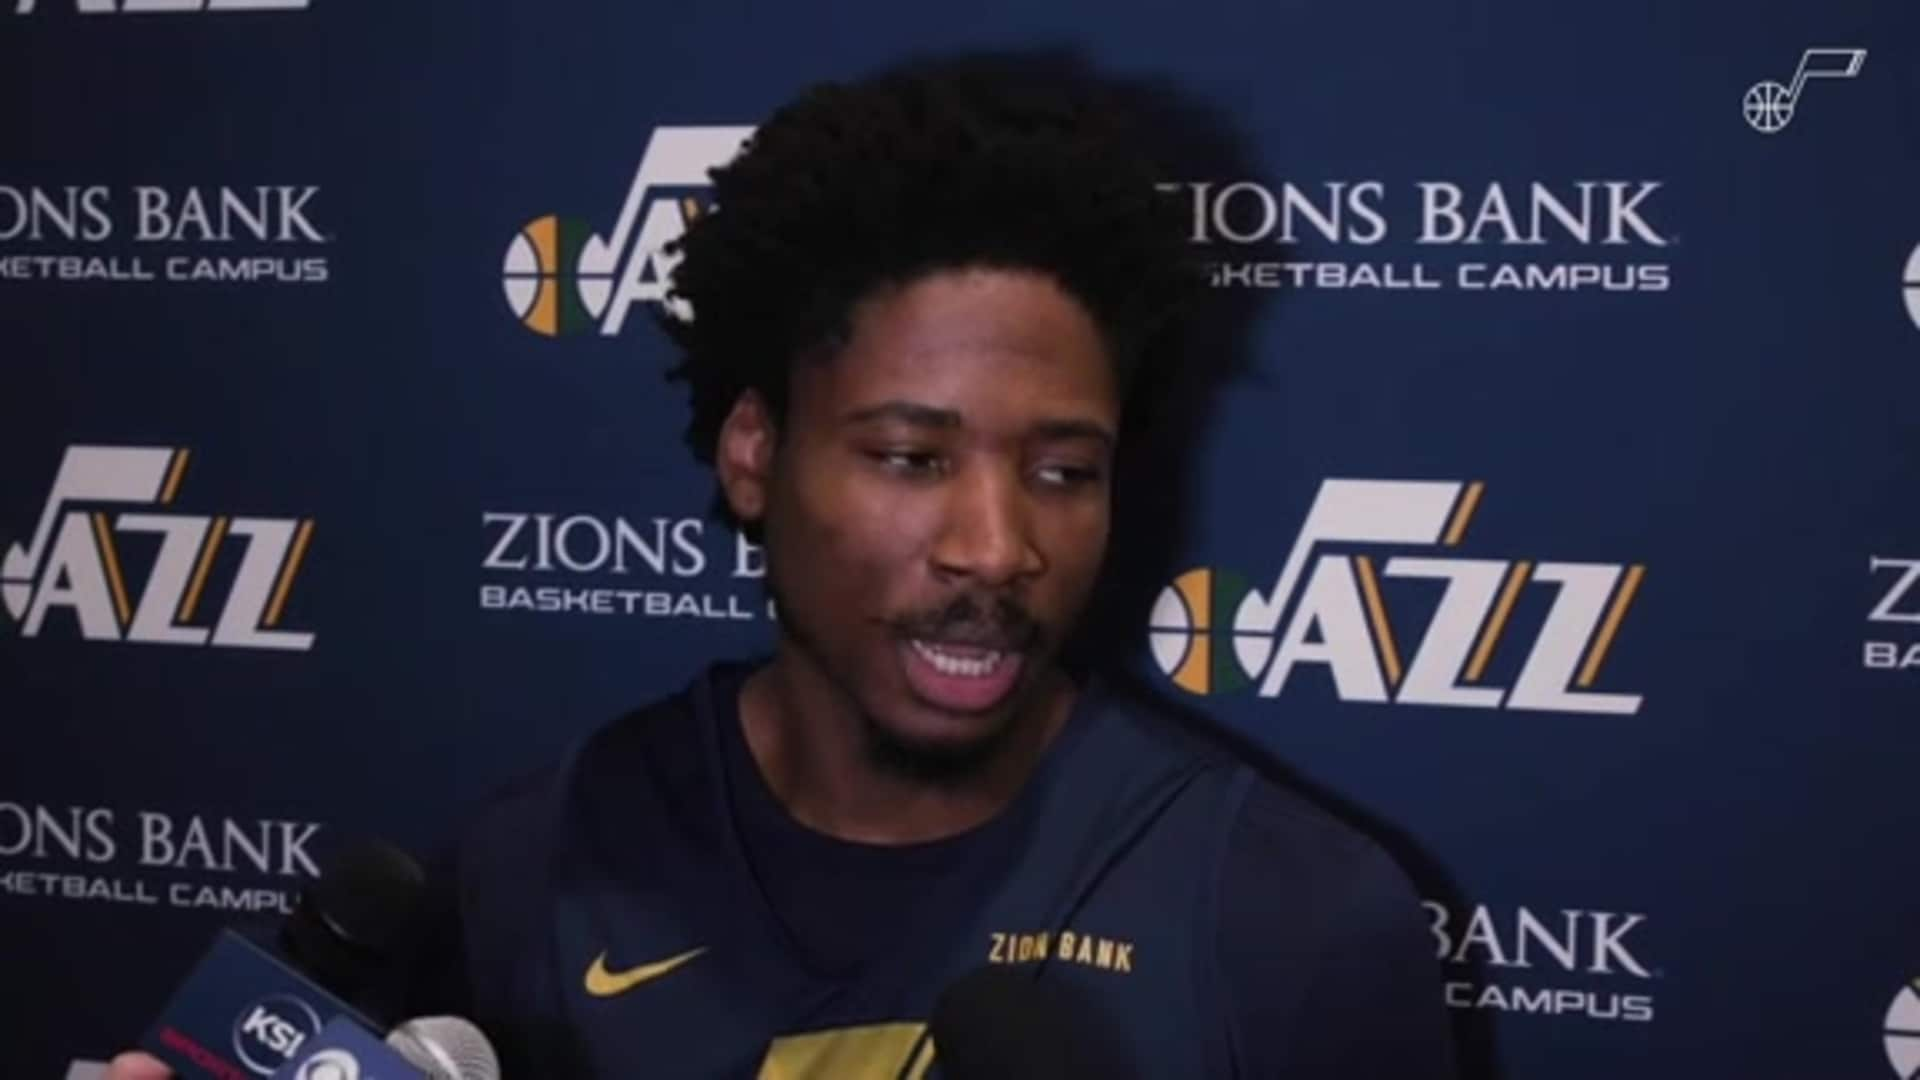 Shootaround Interviews: Ed Davis on being teammates with Kobe